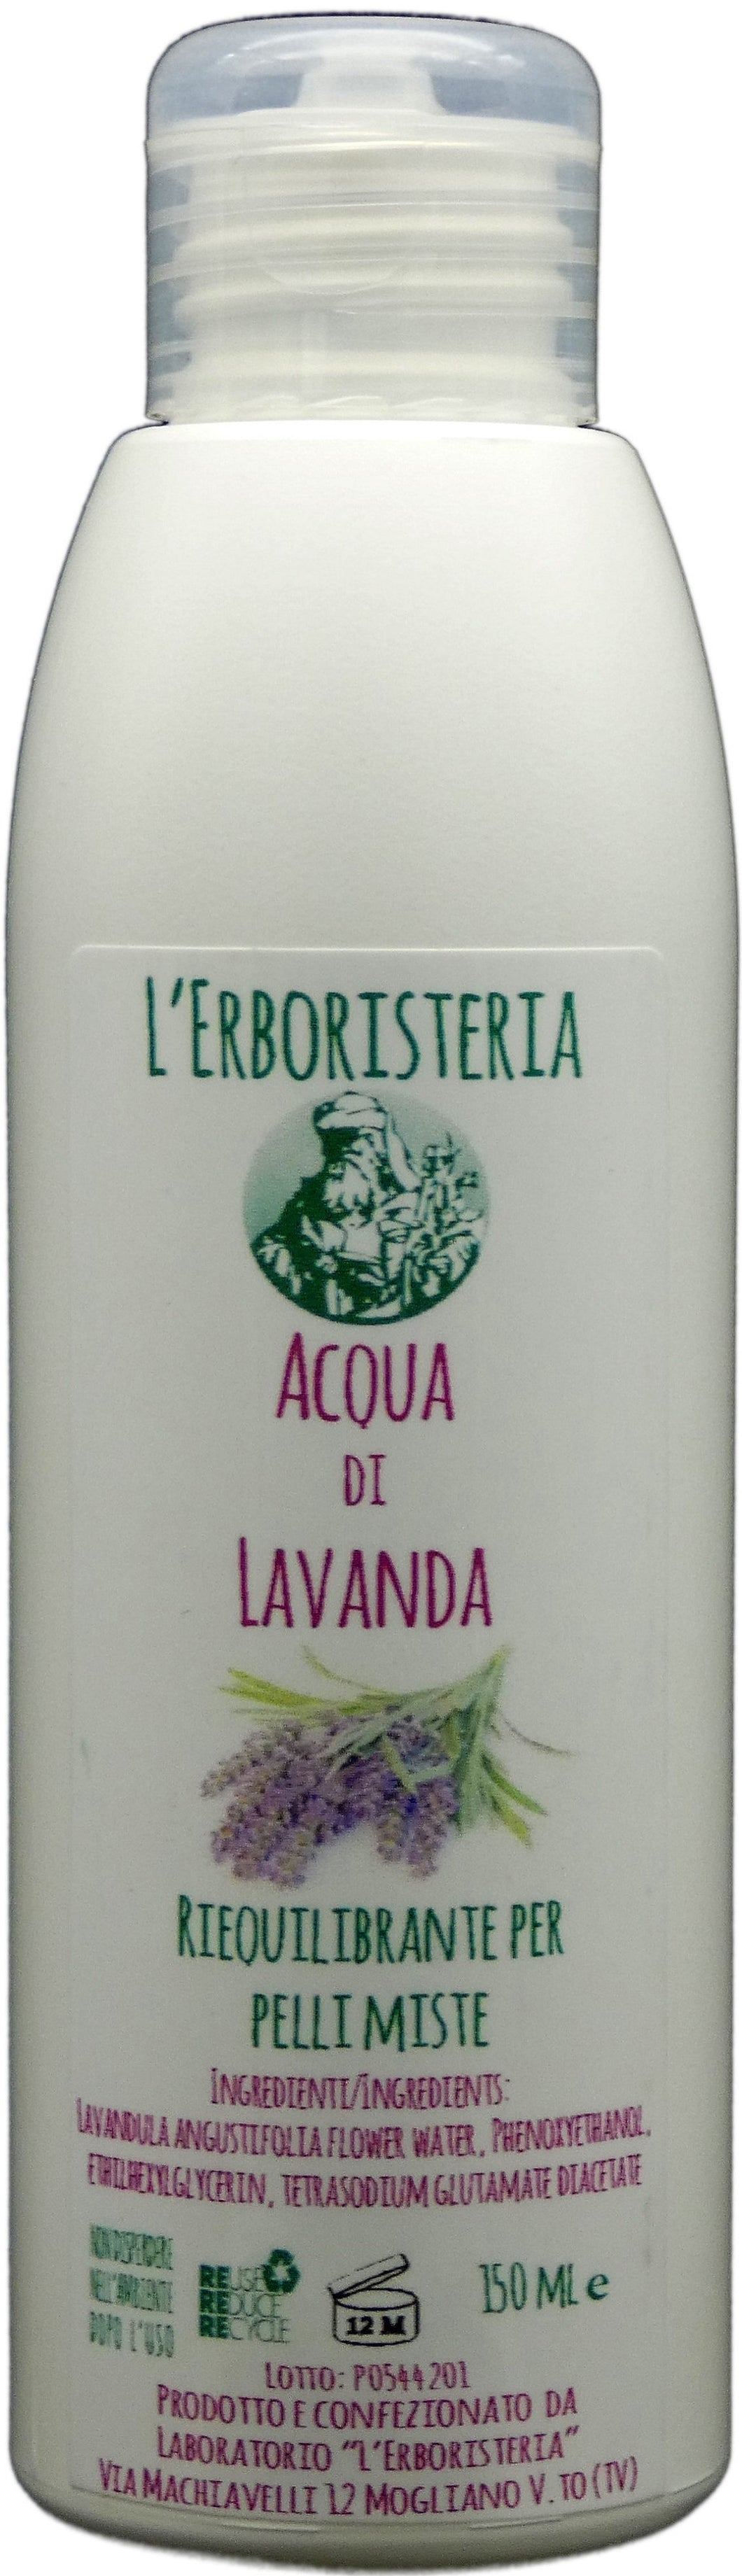 Acqua di Lavanda 150 ml